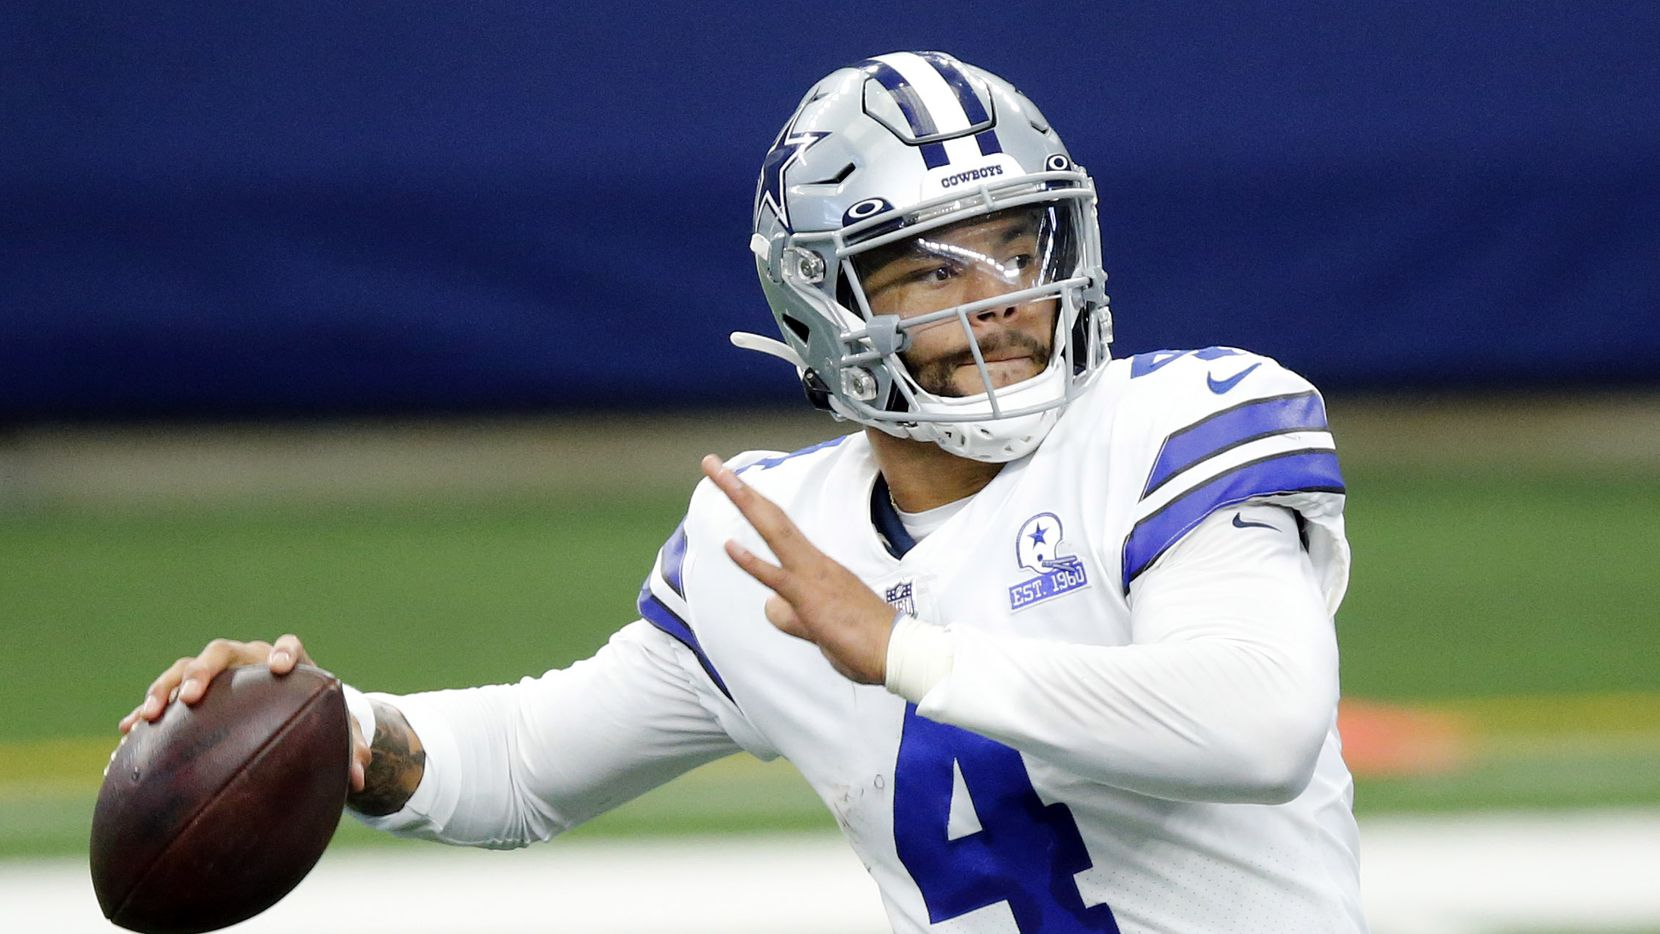 What They Re Saying About Dak Prescott S Injury He S As Tough As They Come